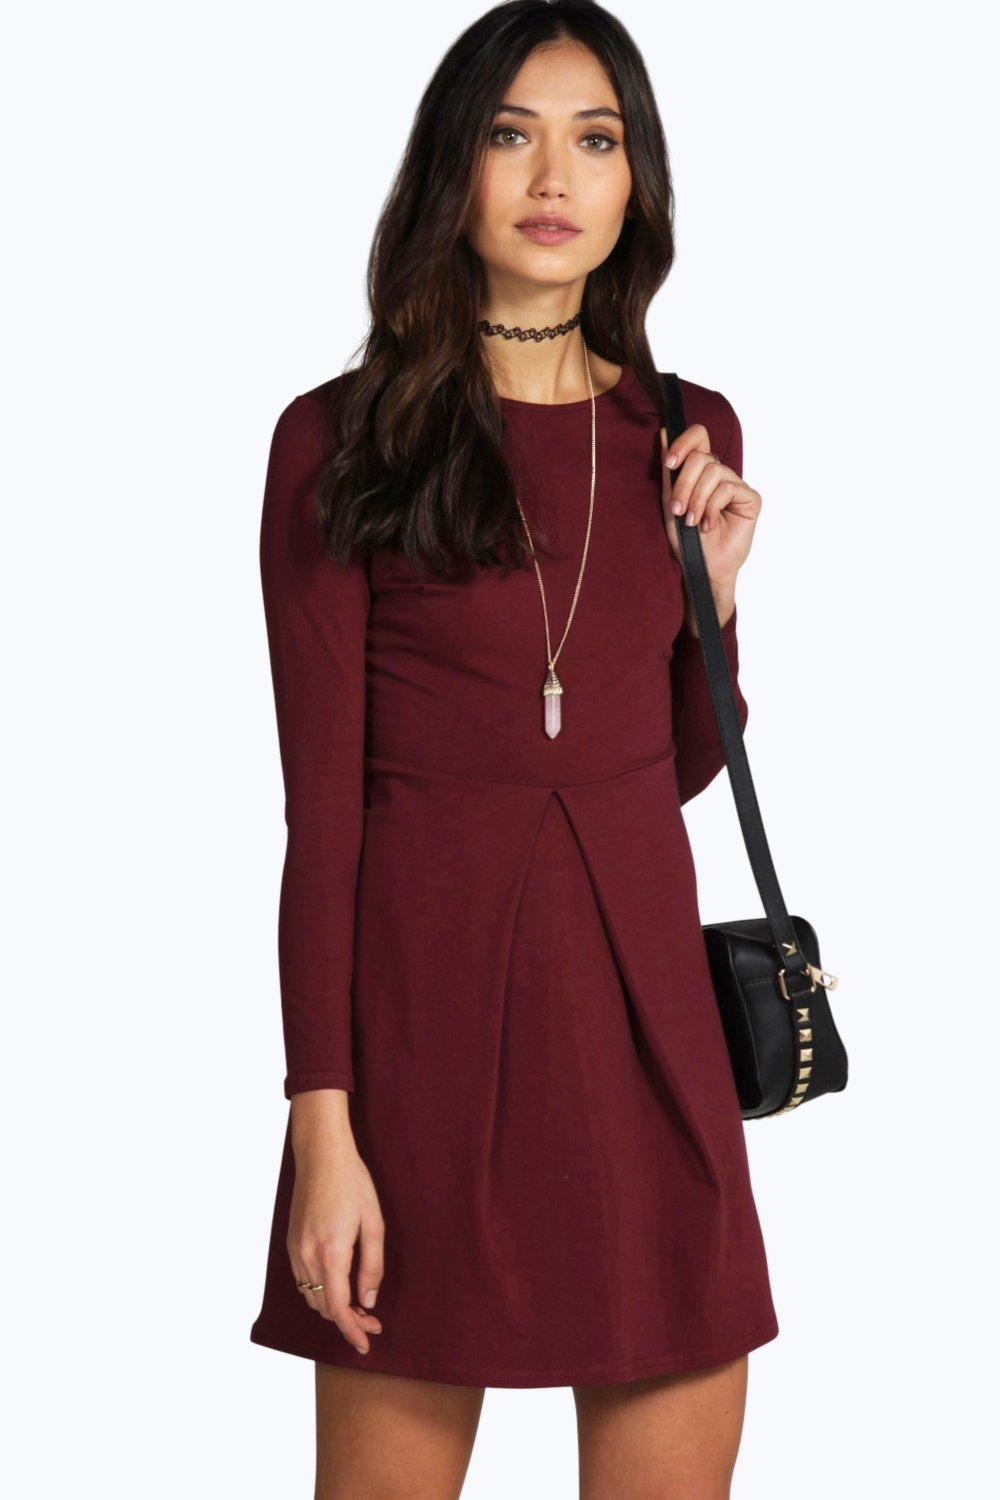 Box Pleat Long Sleeve Skater Dress - wine